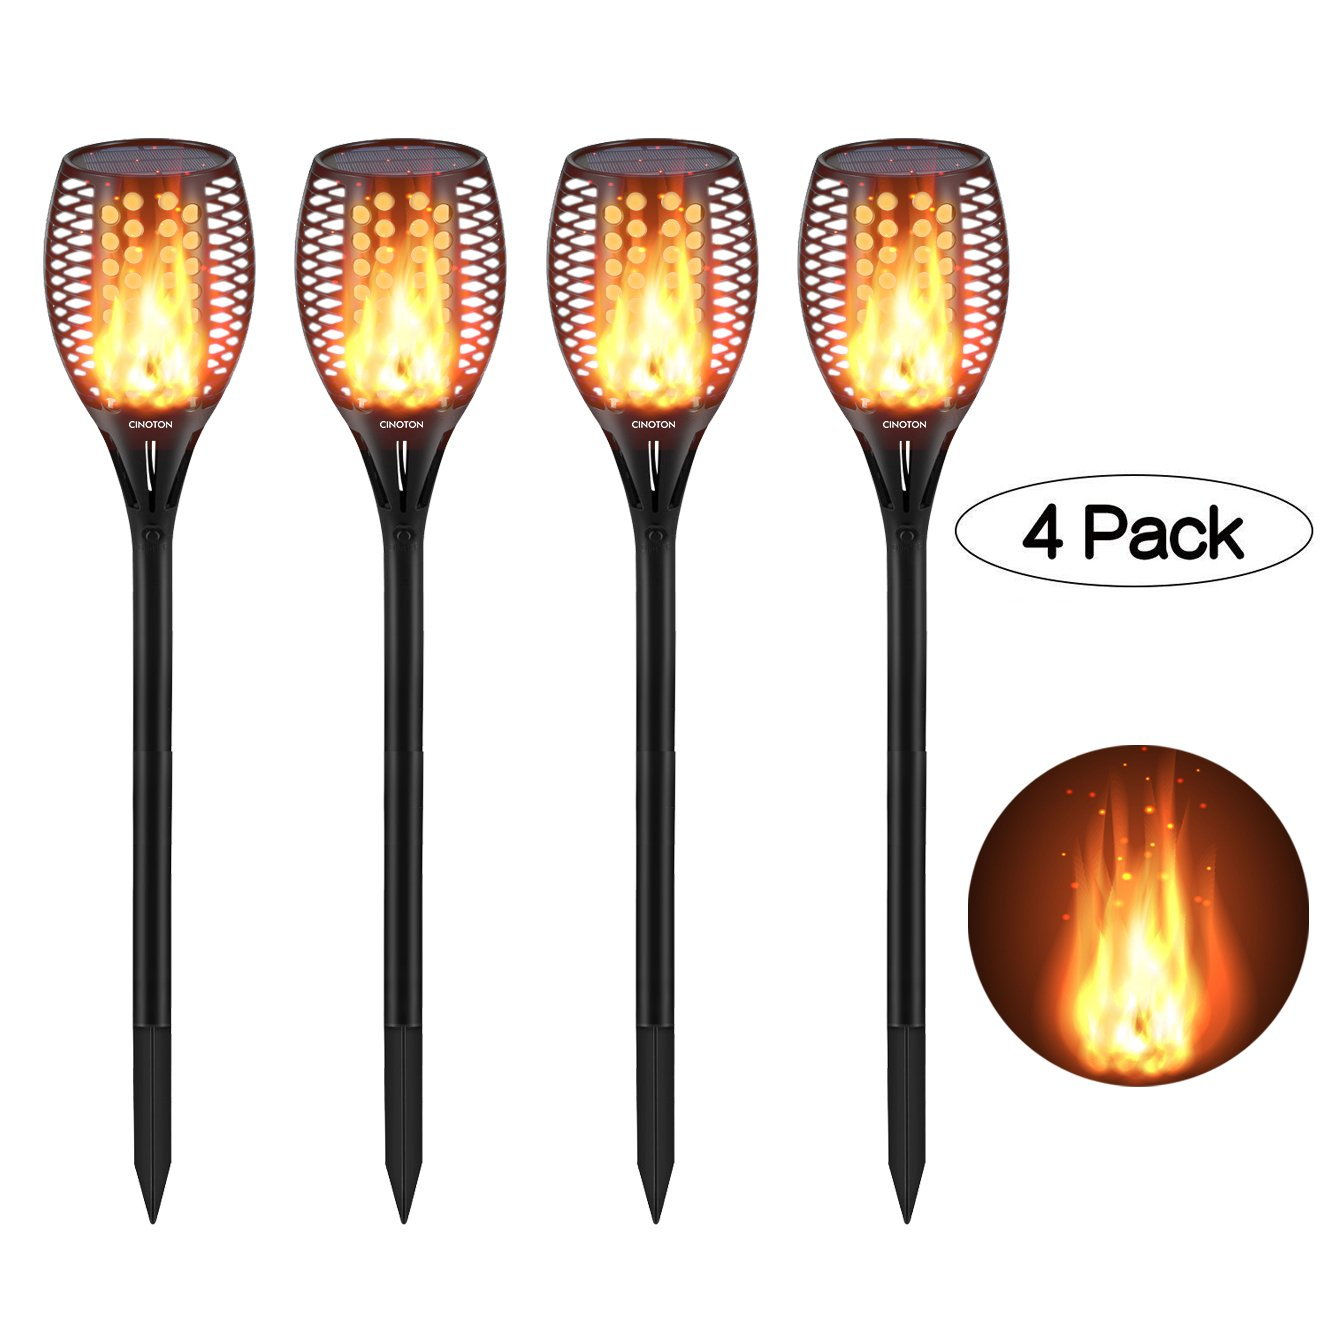 CINOTON Solar Light,Path Torches Dancing Flame Lighting 96 LED Dusk to Dawn Flickering Outdoor Waterproof garden decorations (4) by CINOTON